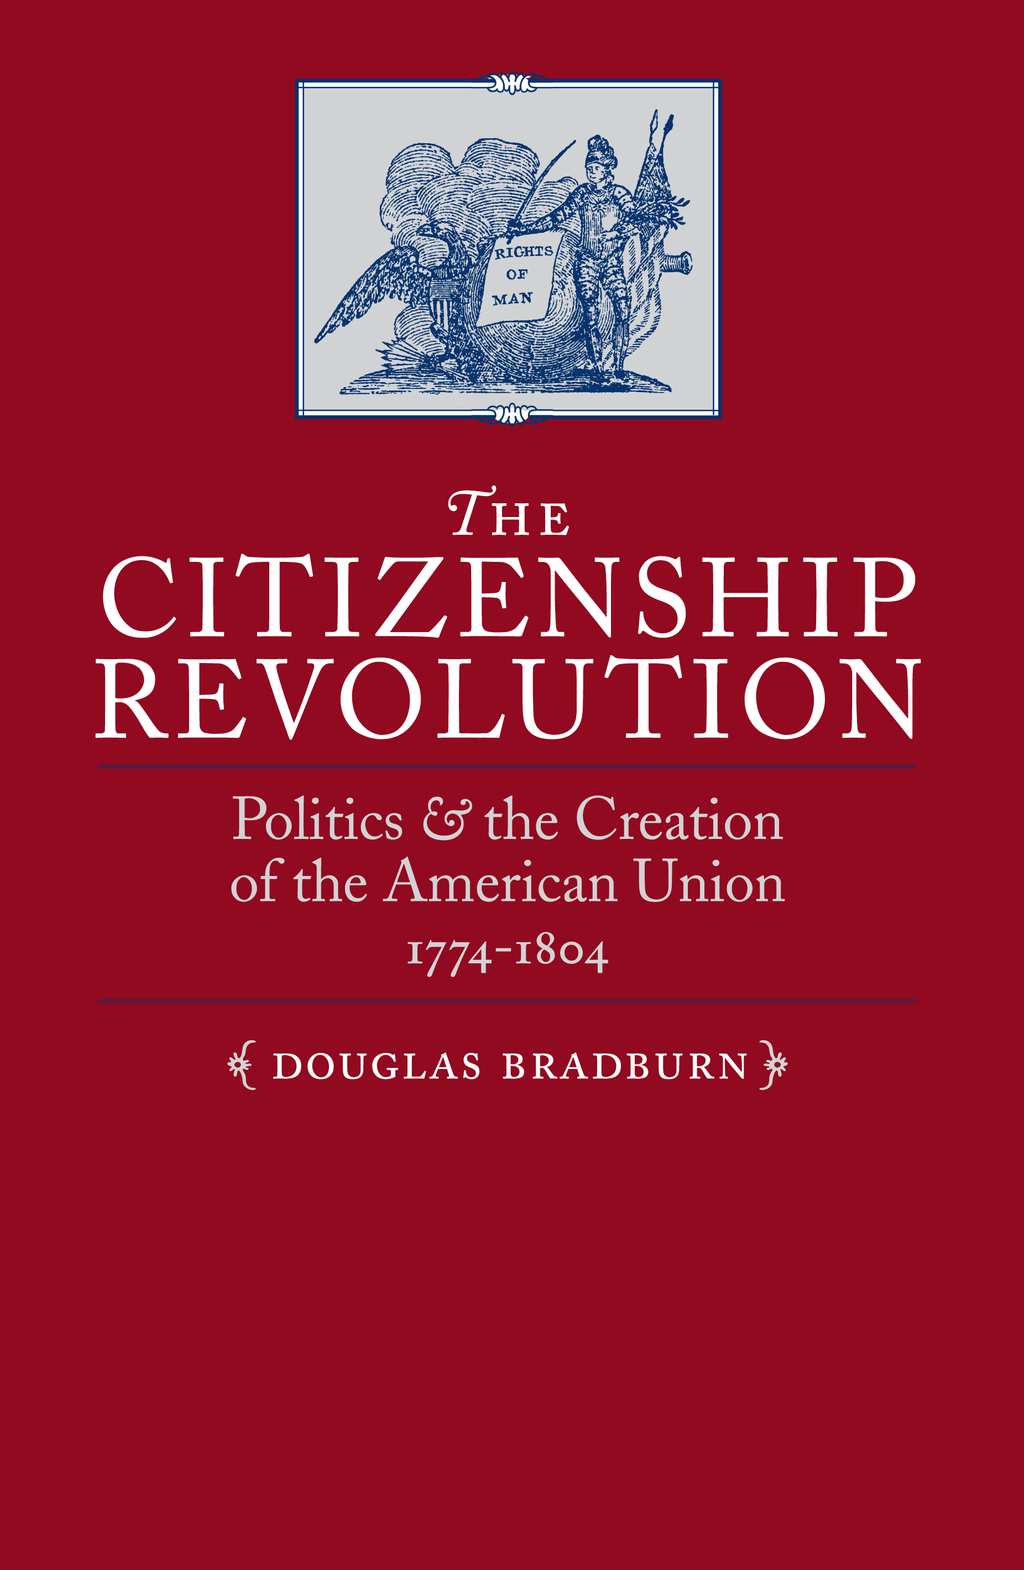 The Citizenship Revolution